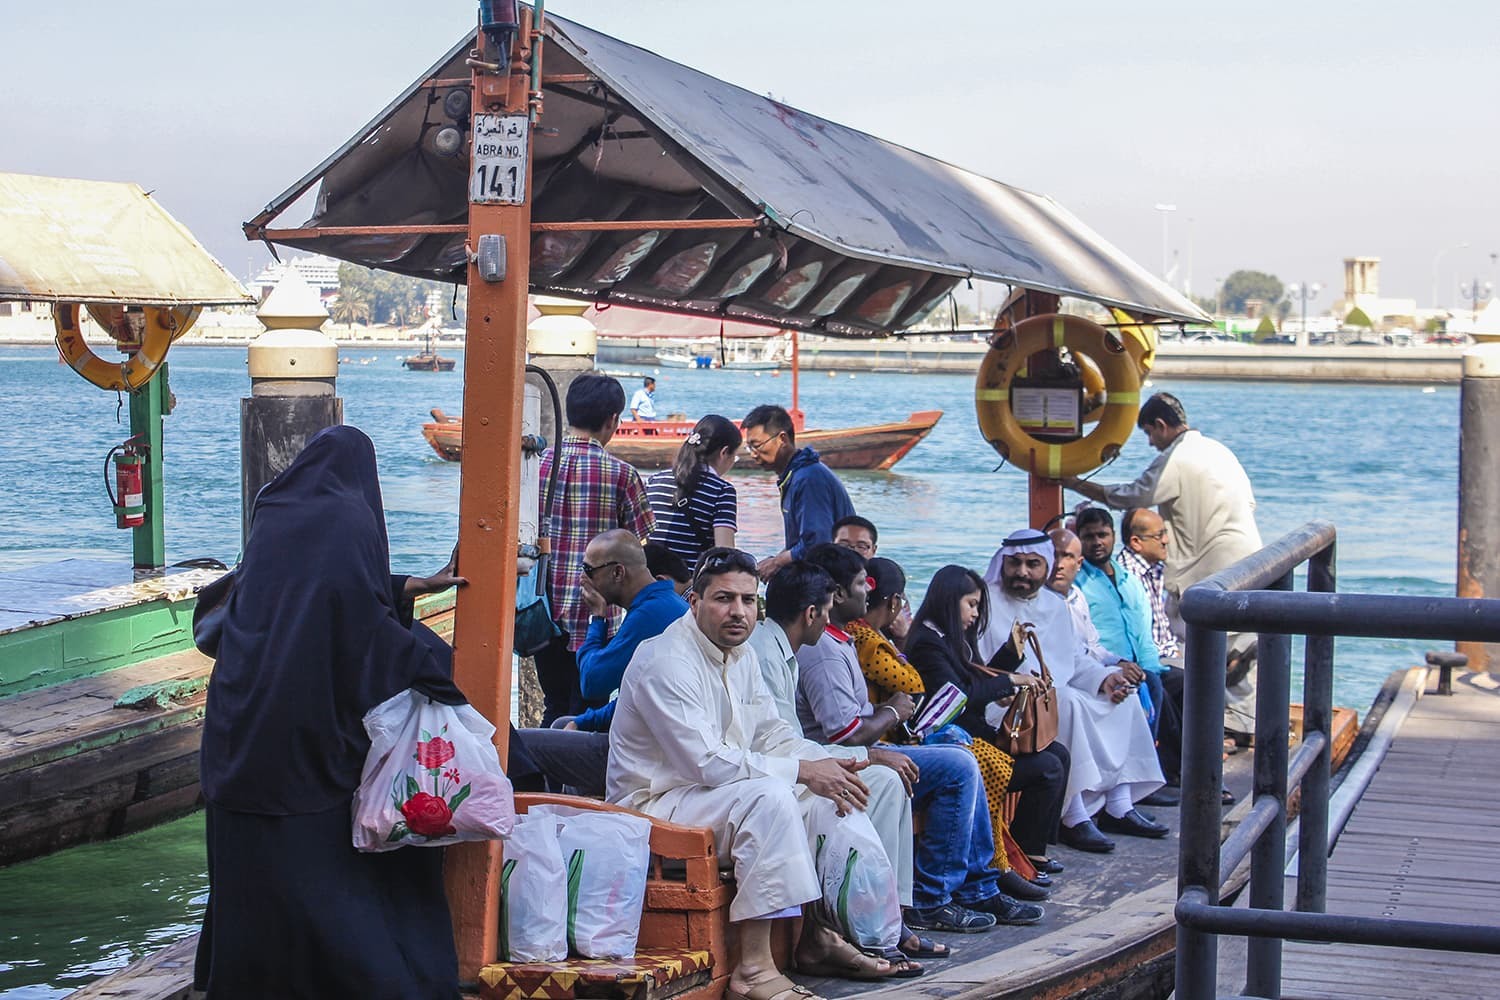 There is always a mix of people on the *abra* rides, which has stopovers across the entire Dubai Creek.